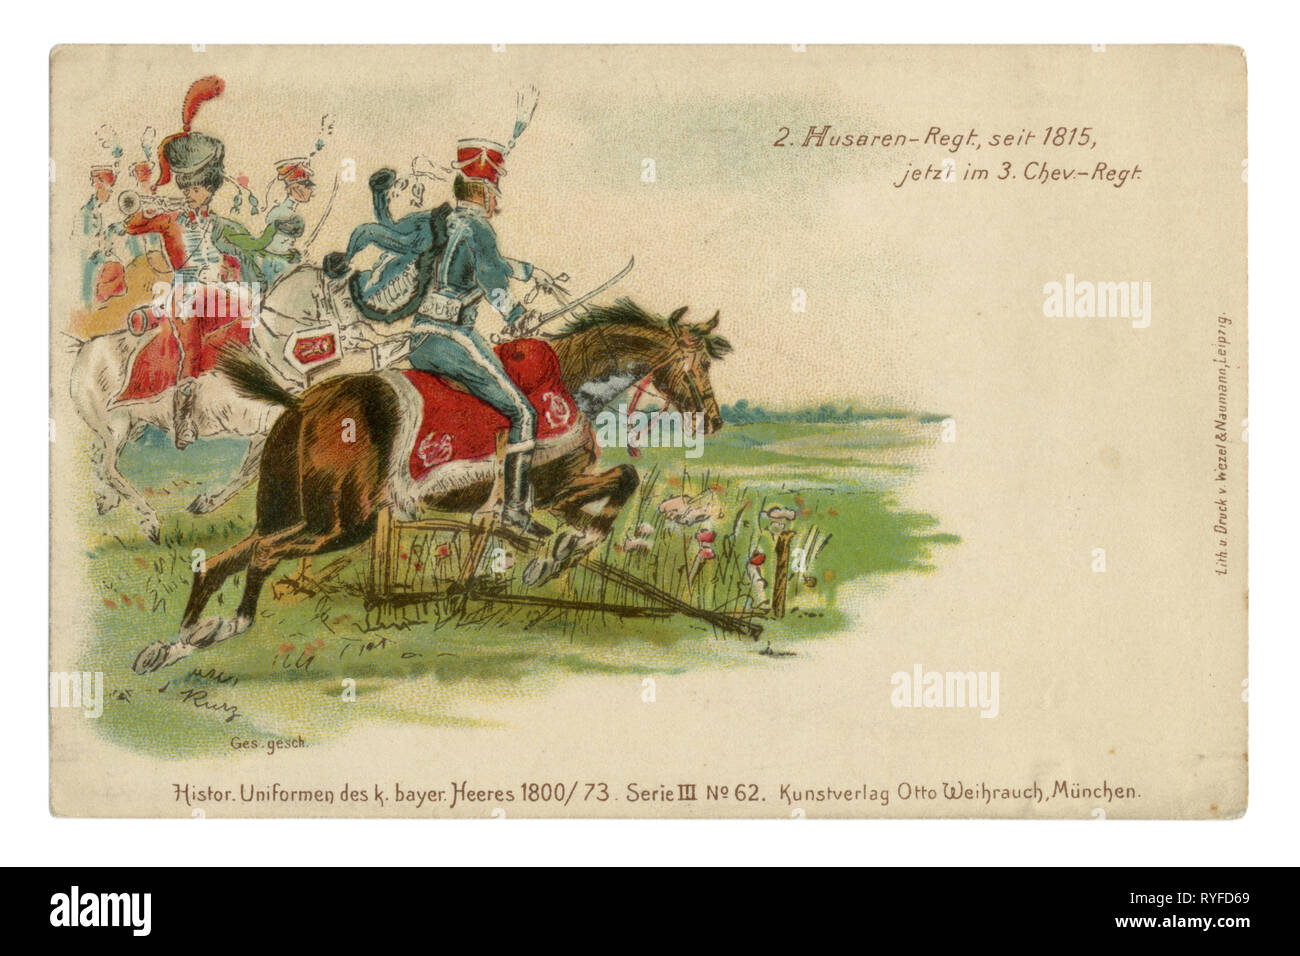 German historical postcard: Lithography of the late 19th century. A squadron of light cavalry hussar rides in the attack, 1815, Napoleonic wars - Stock Image